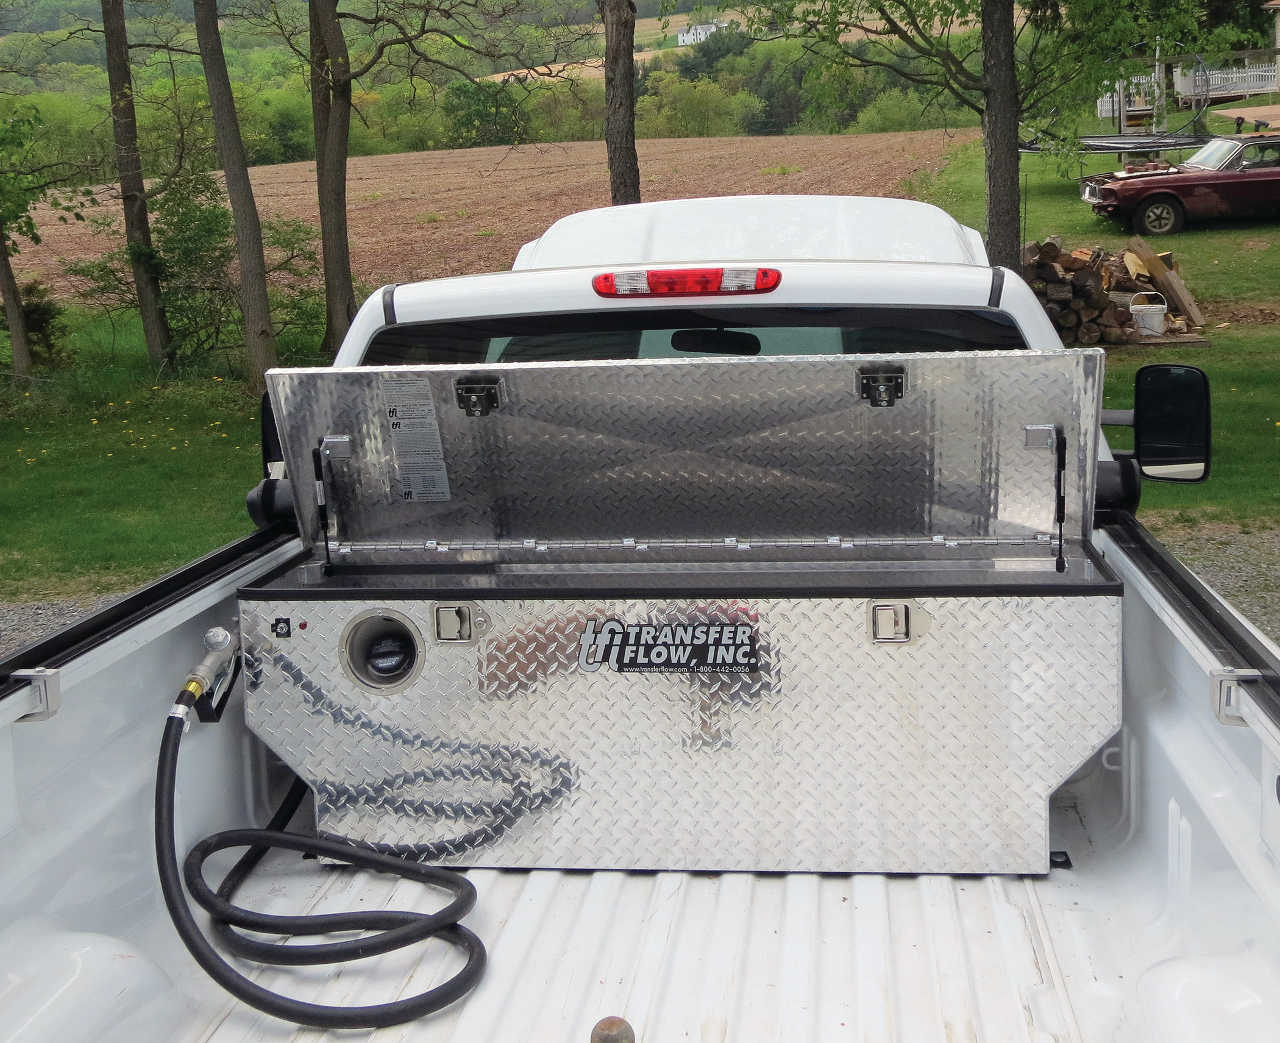 Gas Fuel Tanks For Pickup Trucks Trailer Wiring Harness 2002 Silverado Image Not Found Or Type Unknown